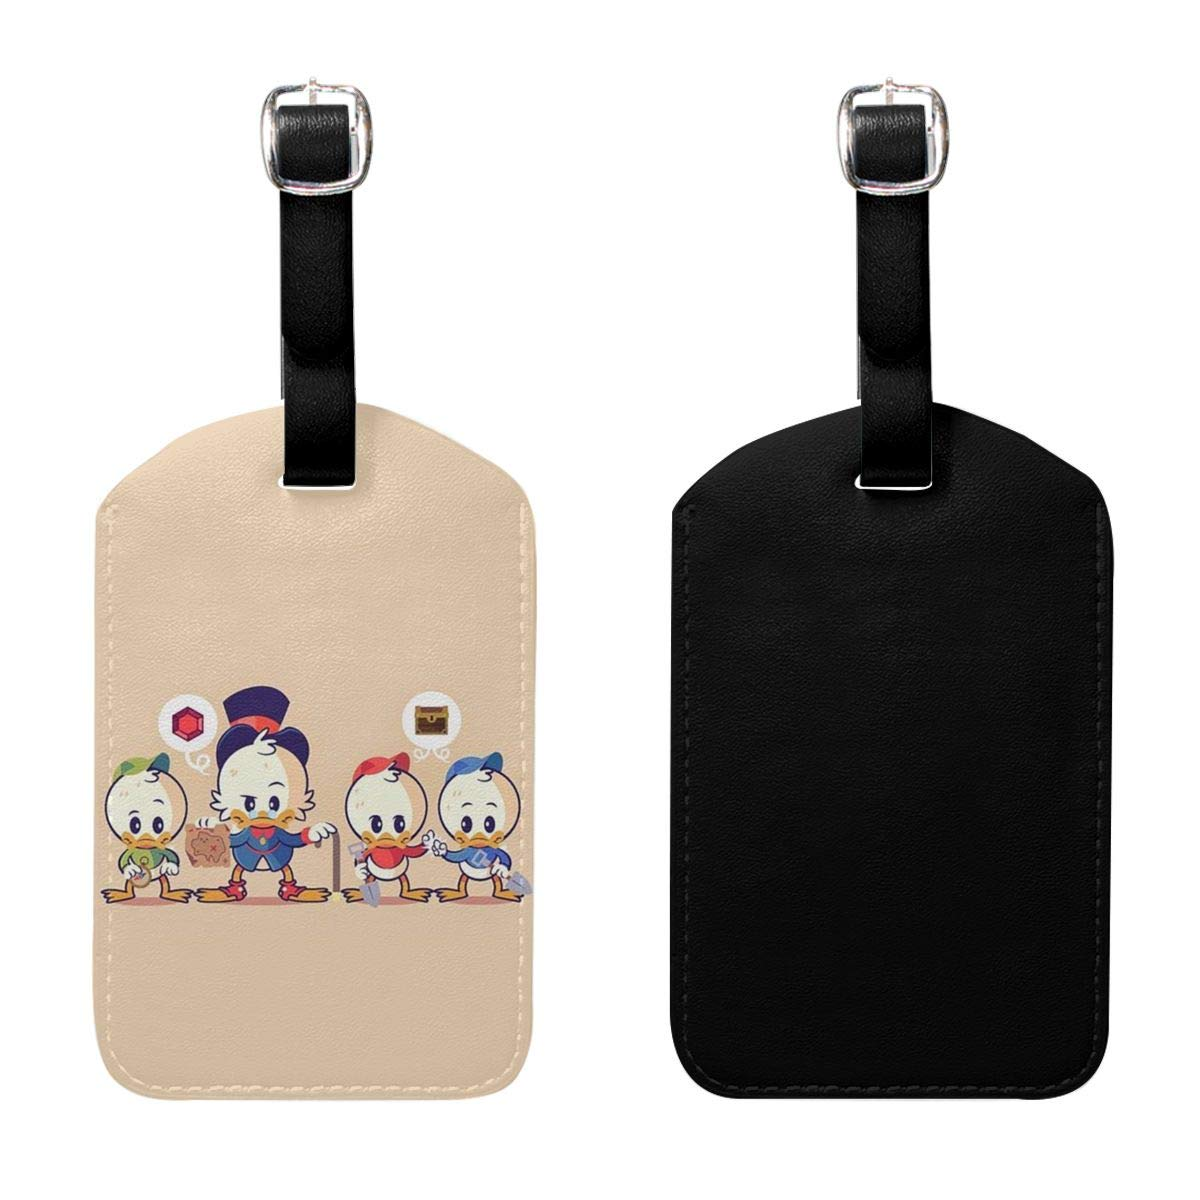 Set of 2 PU Leather Luggage Tags Cute Donald Duck Suitcase Labels Bag Adjustable Leather Strap Travel Accessories